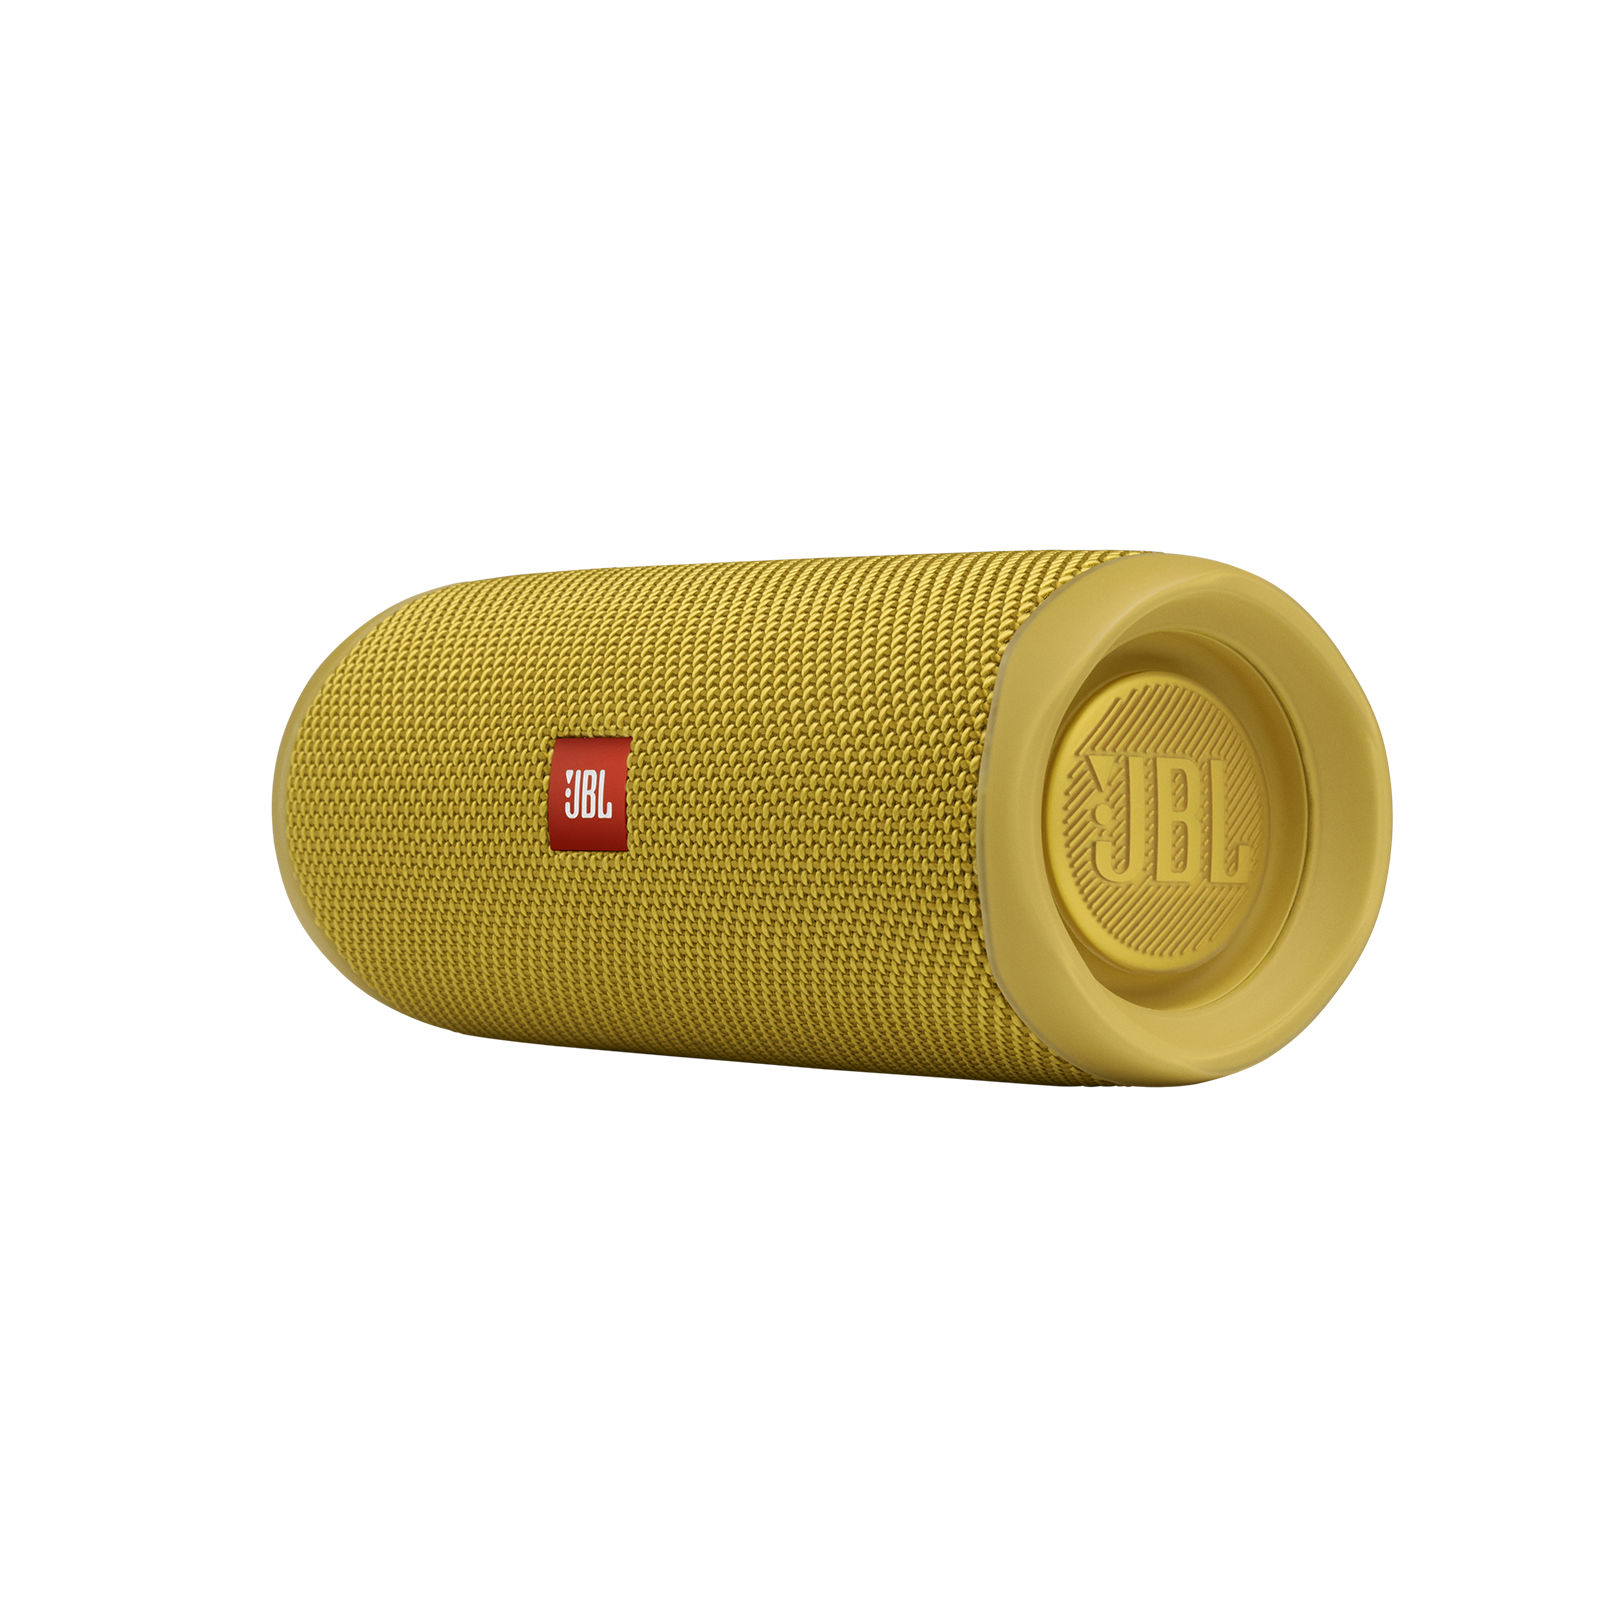 JBL FLIP 5 - Mustard Yellow - Portable Waterproof Speaker - Detailshot 3